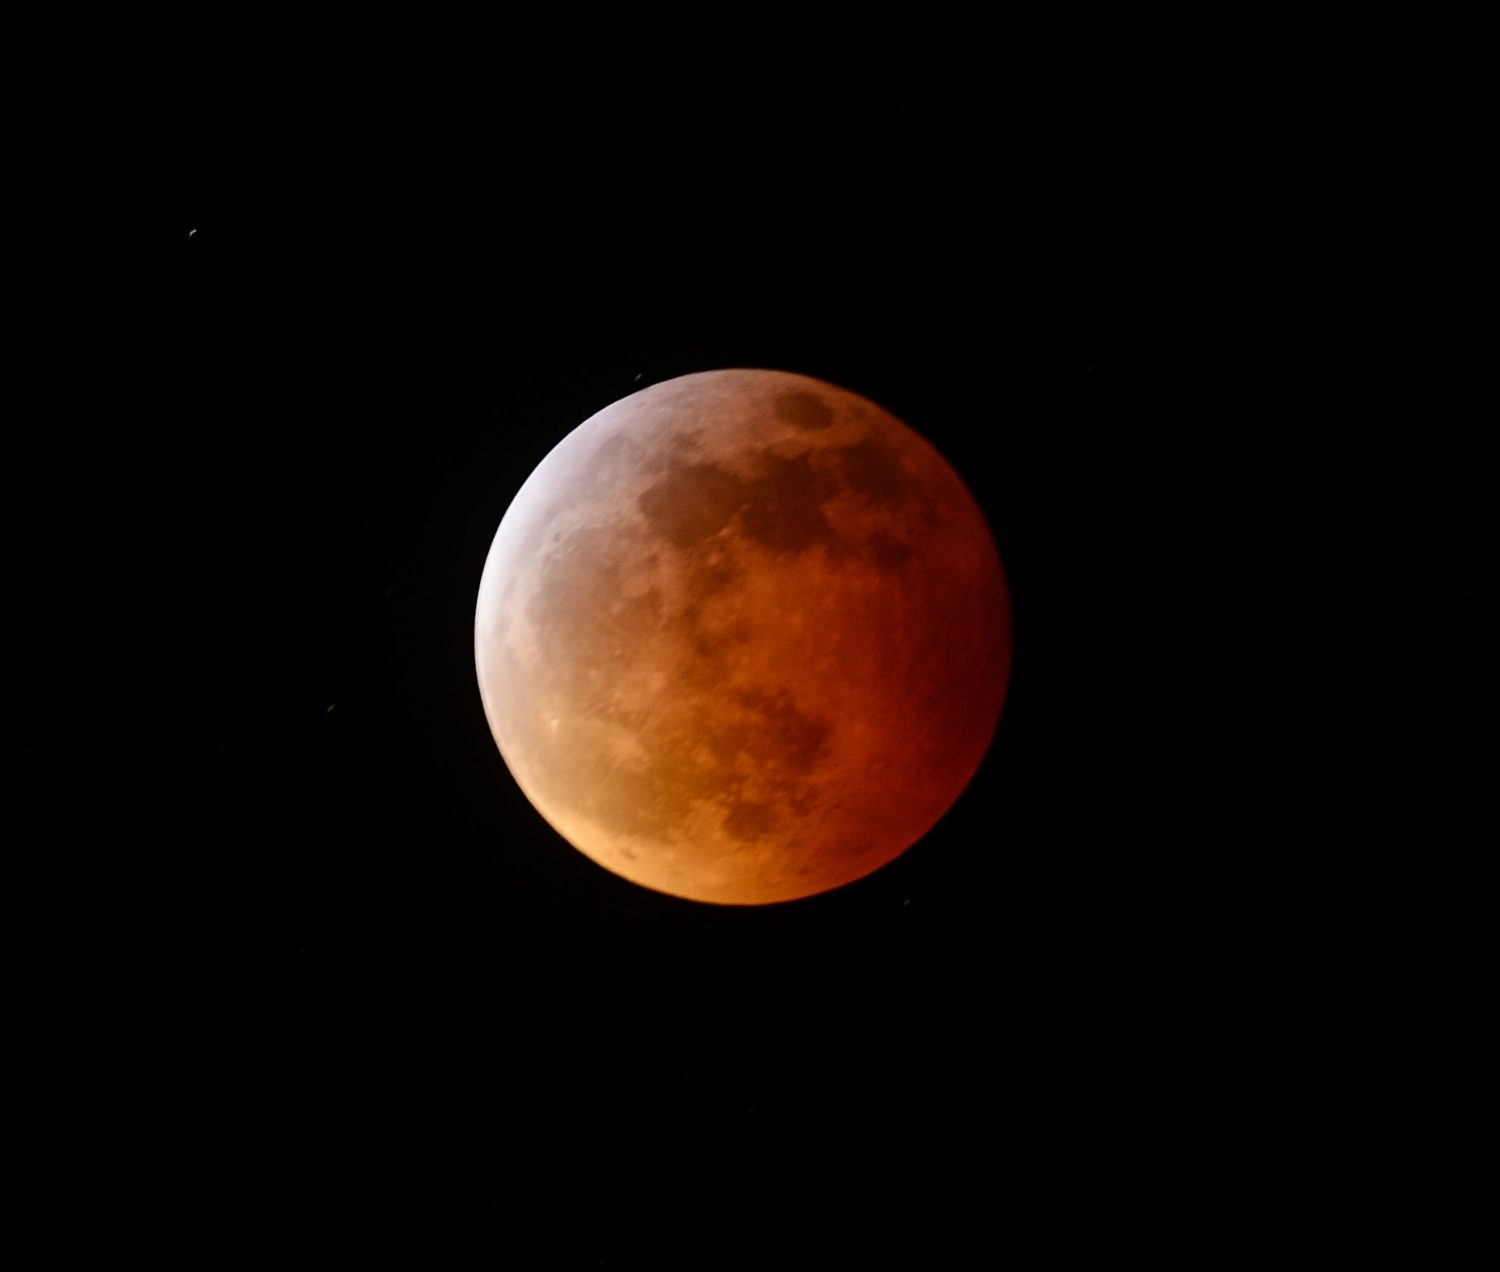 PHOTOS Blood red supermoon lunar eclipse on Jan 20 2019 The Know 1500x1272